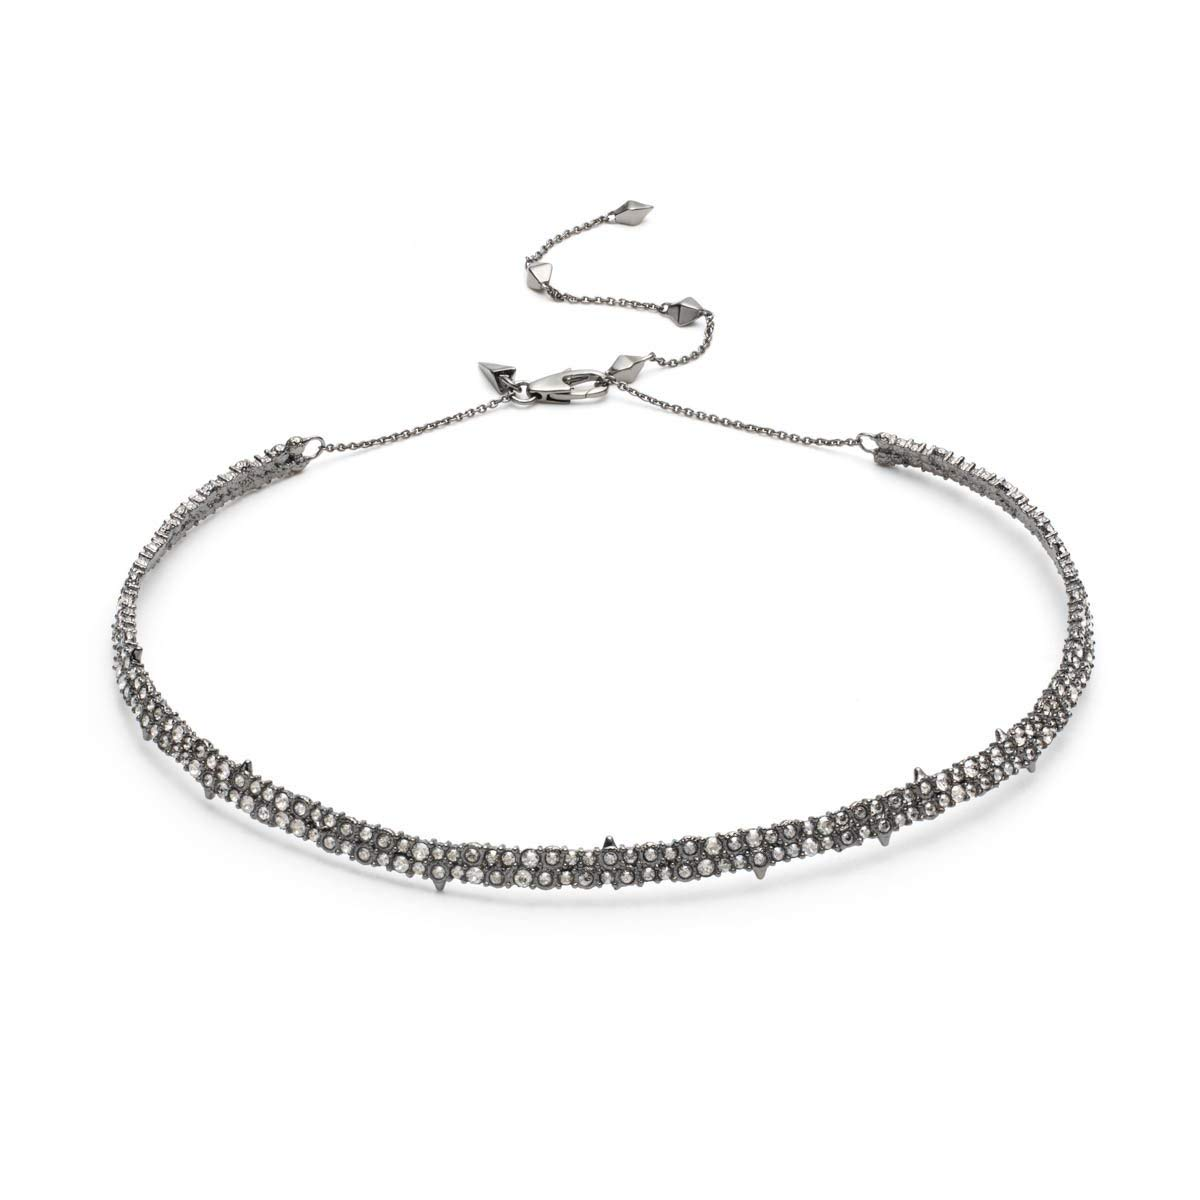 Alexis Bittar Women's Crystal Encrusted Spike Accented Choker Necklace Ruthenium/10K Gold by Alexis Bittar